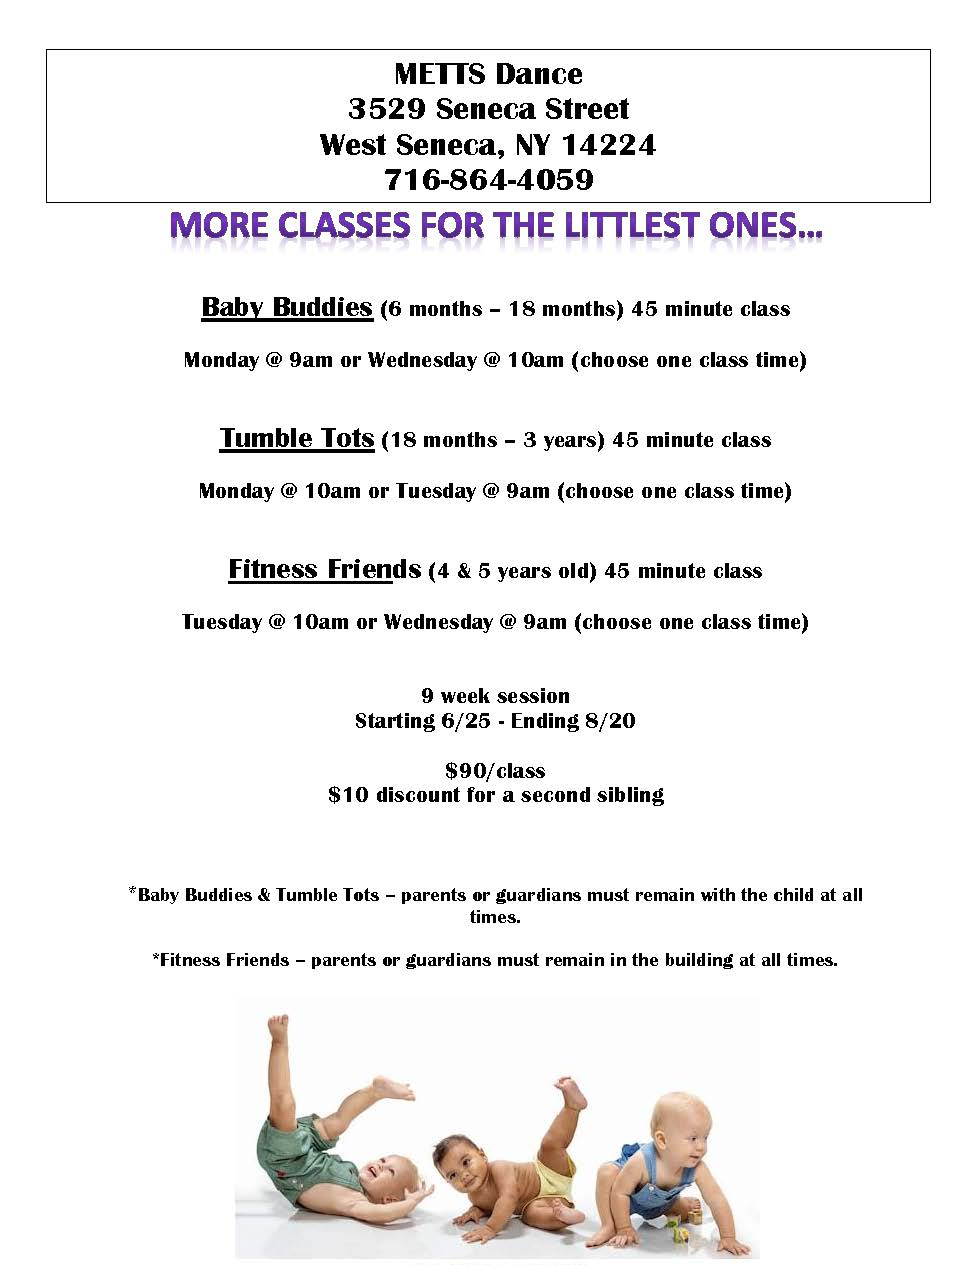 Baby, Toddler, and Preschool Dance Classes in West Seneca and Buffalo NY 14224